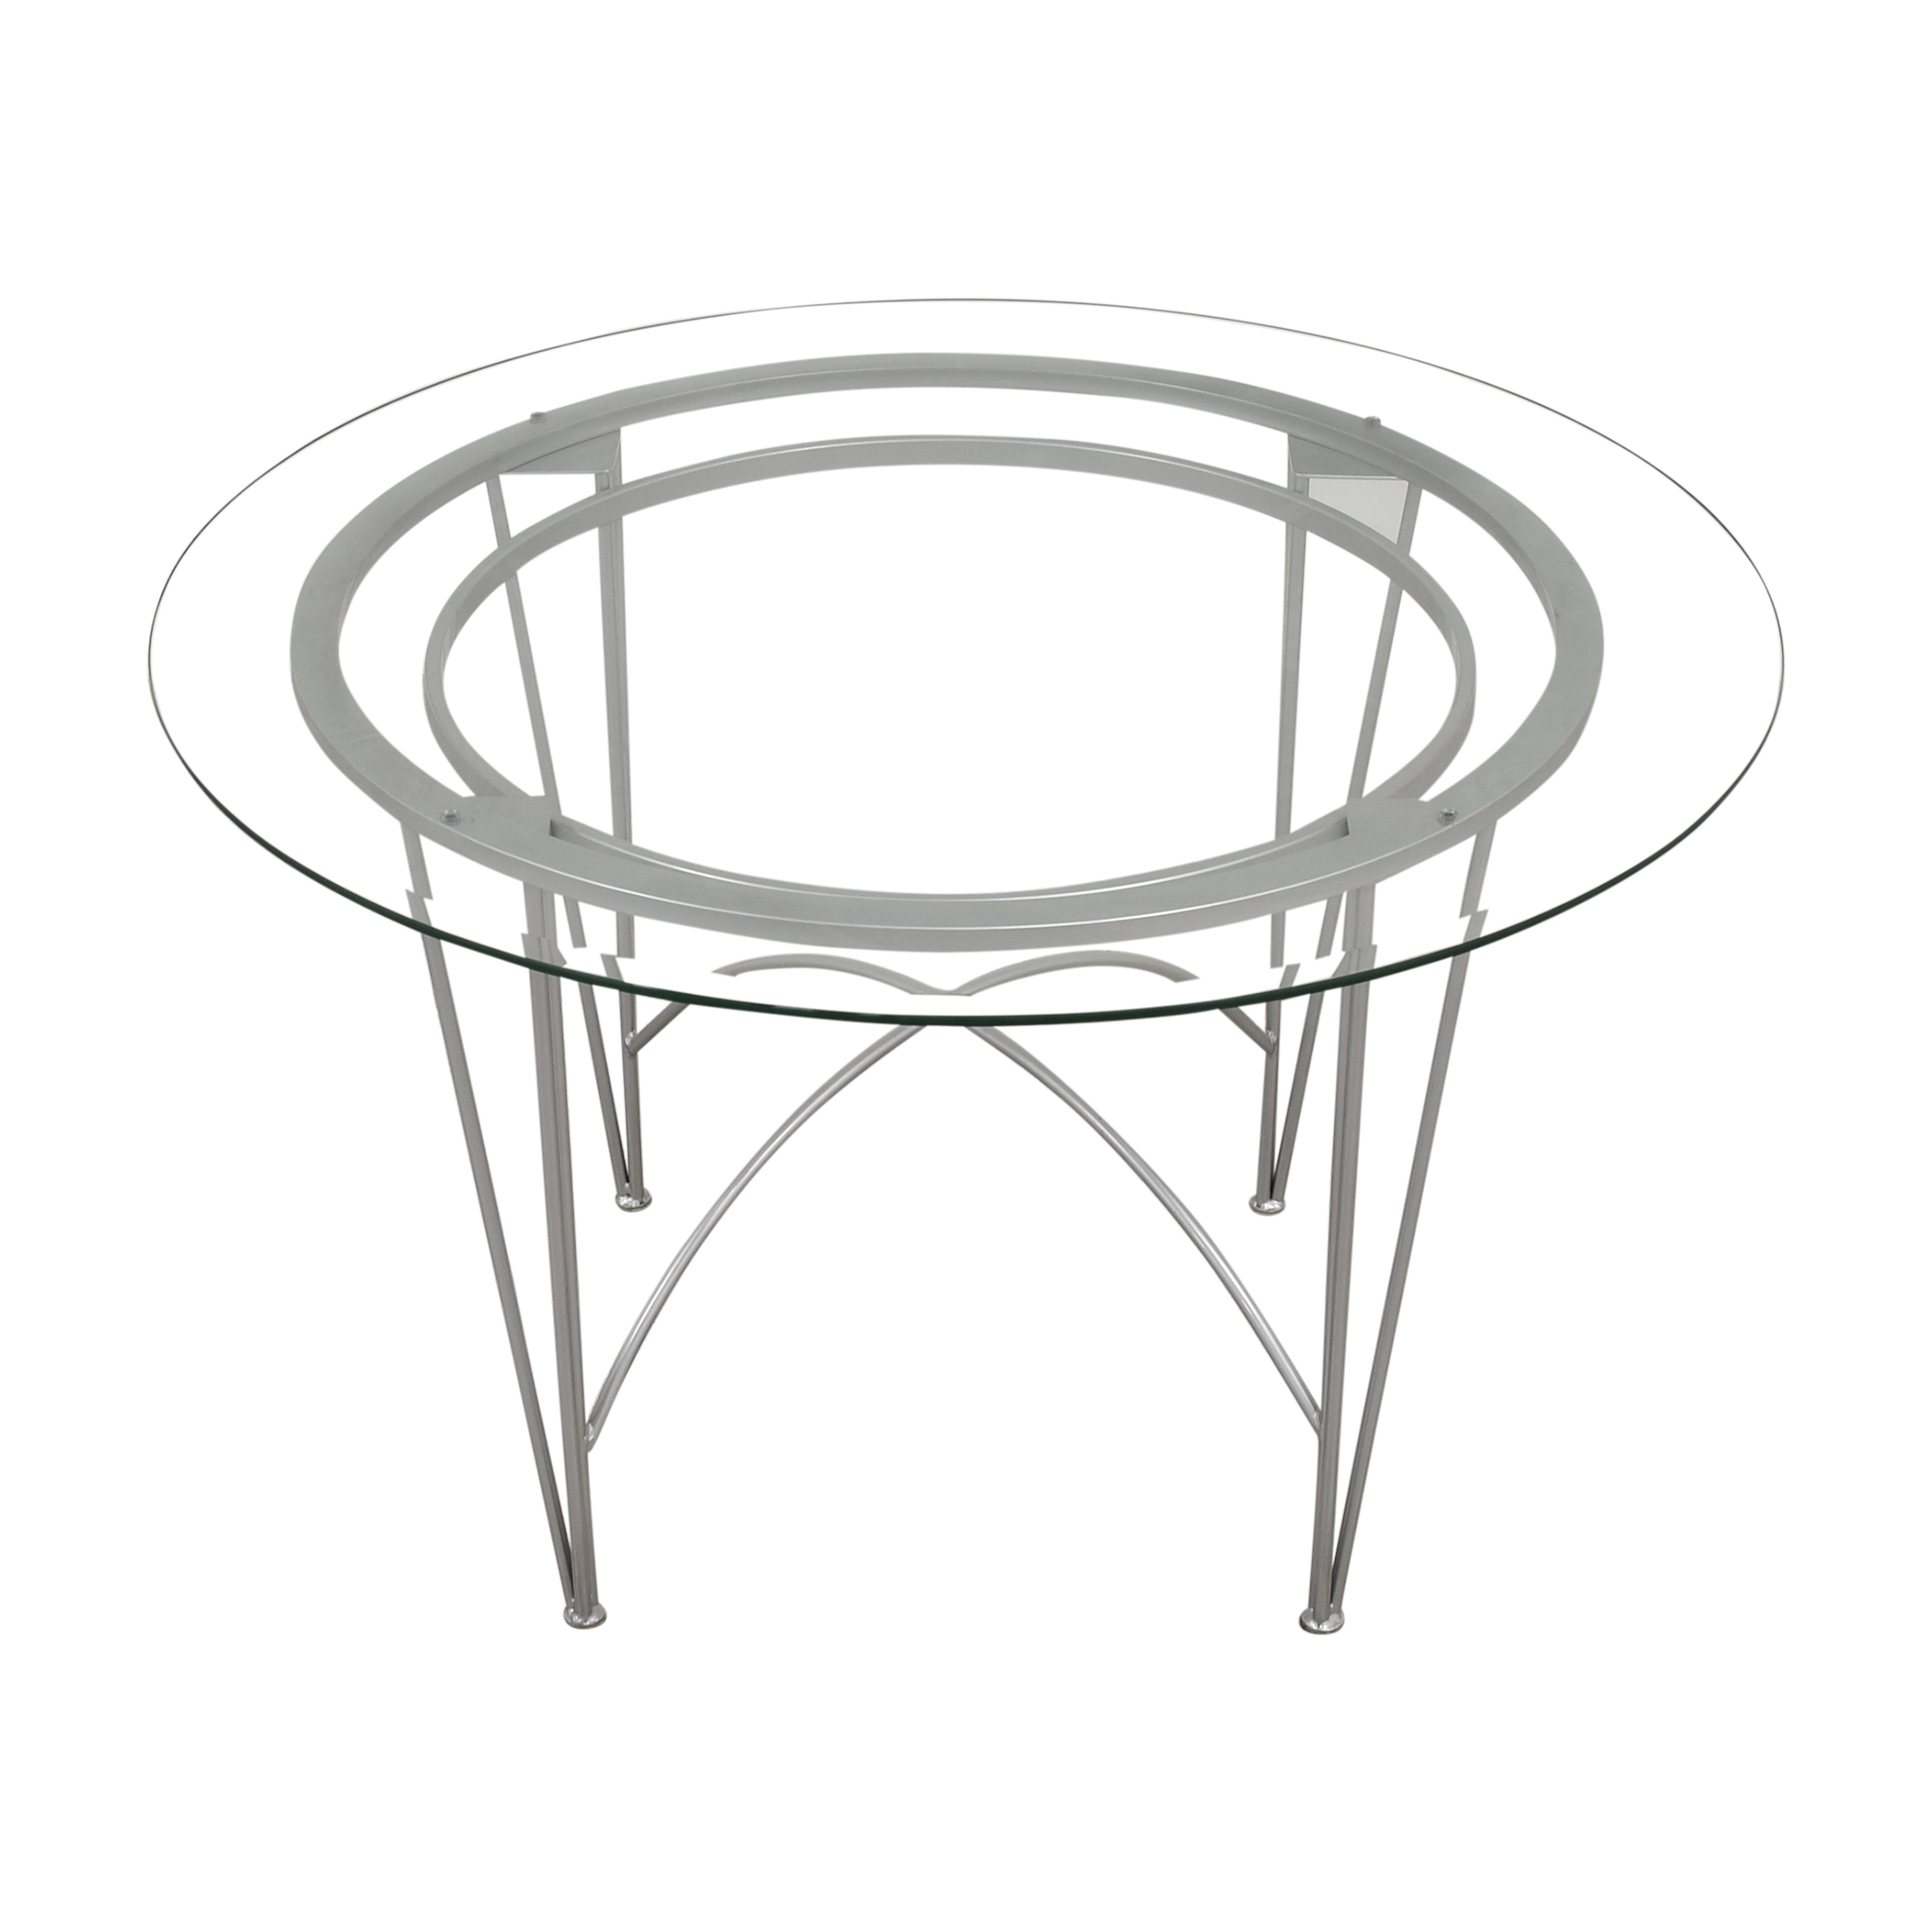 Round Glass Top Dining Table with Hairpin Legs dimensions